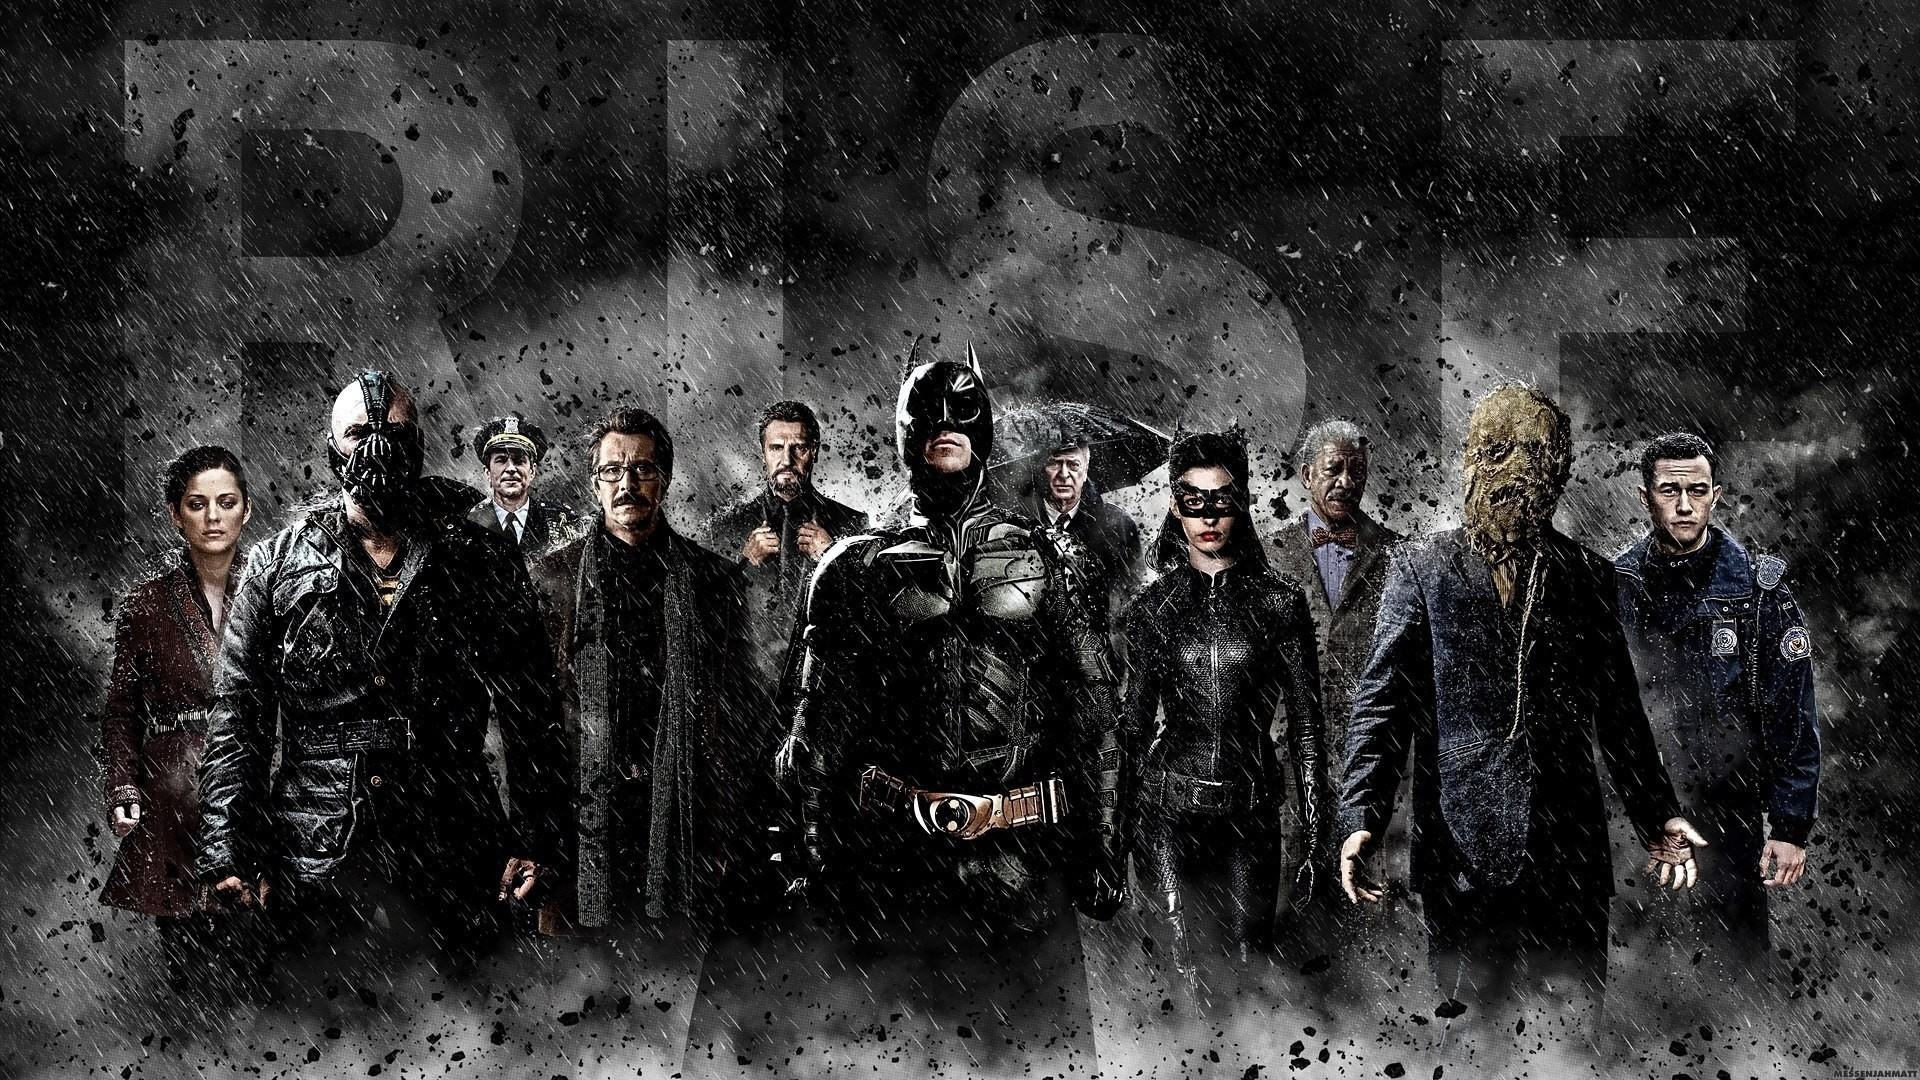 Dark Knight download free wallpaper for pc in hd